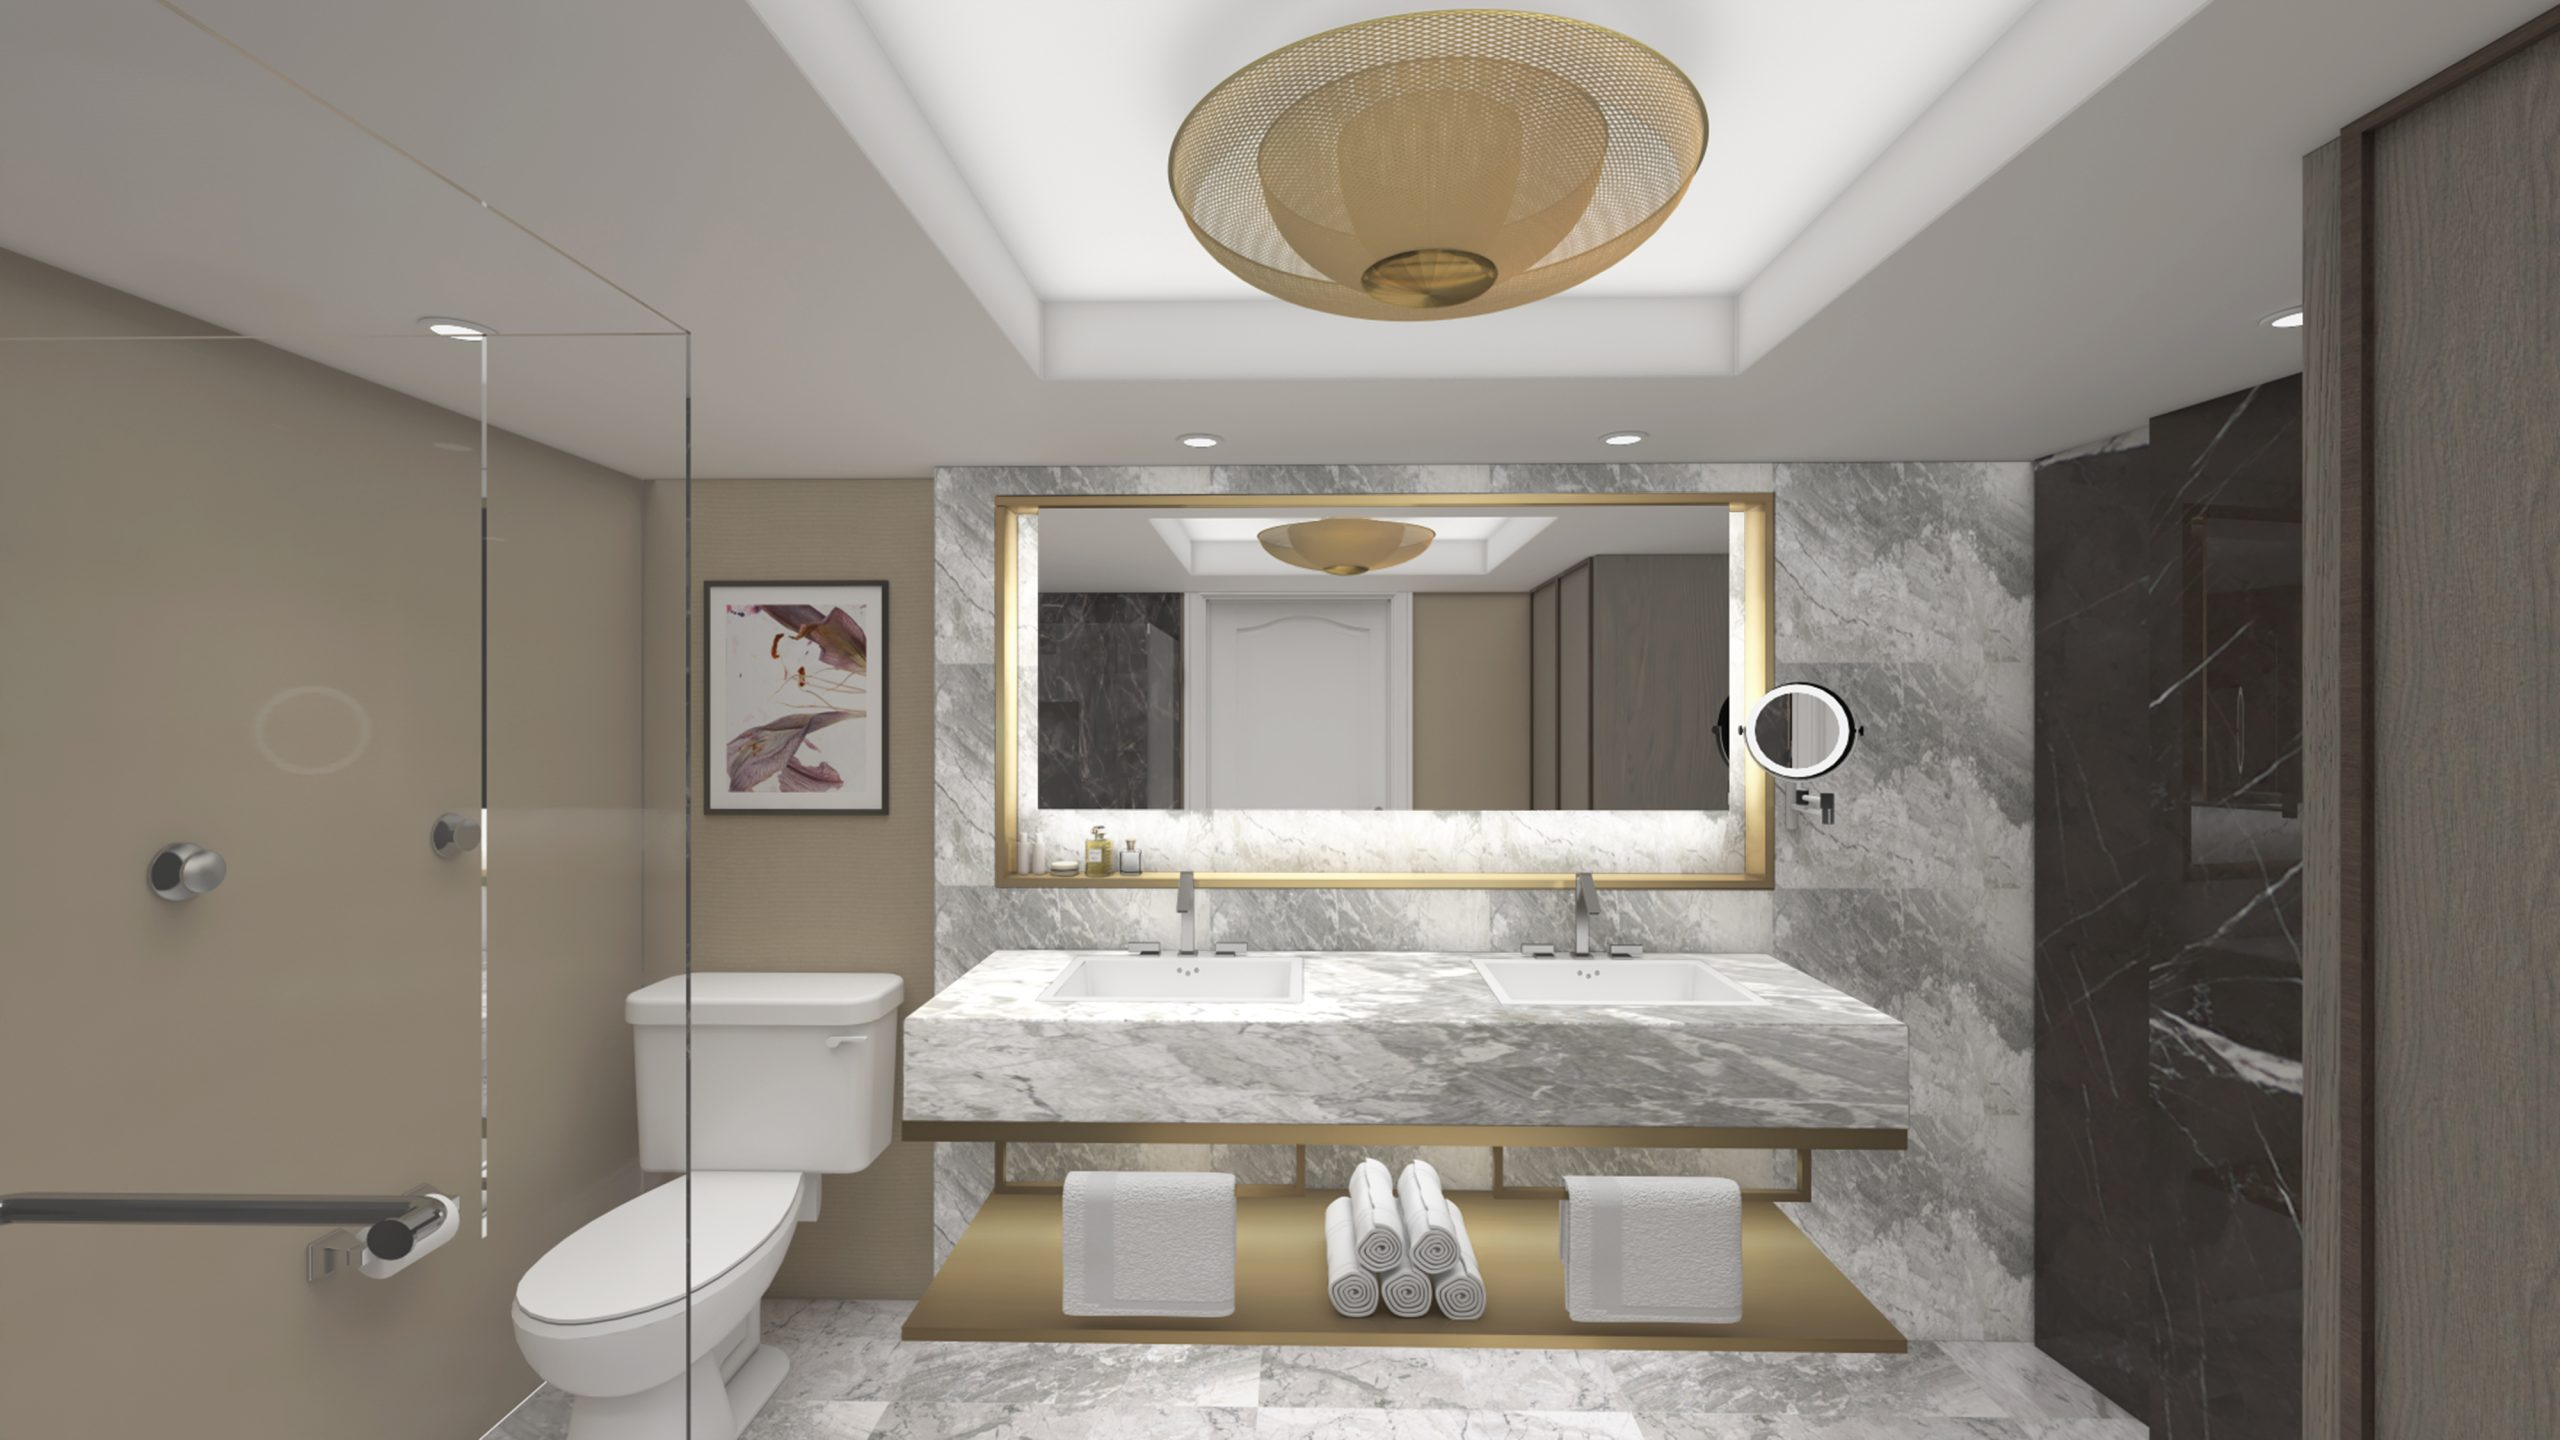 Bellagio Hotel Las Vegas Tower Suite Remodel Contour